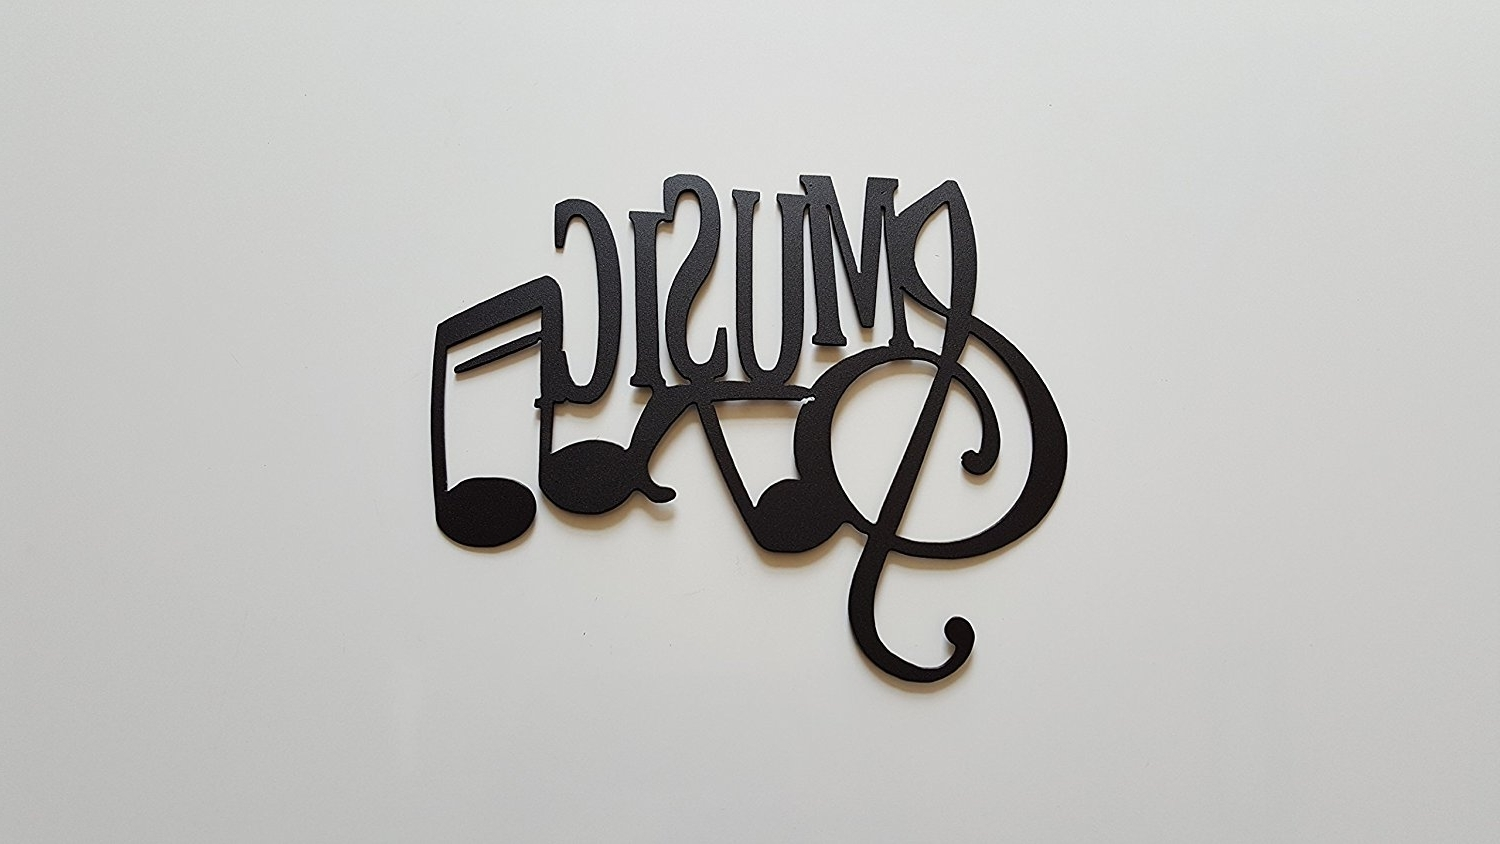 Most Recently Released Buy Music Word And Music Notes Metal Wall Art Decor In Cheap Price With Regard To Music Wall Art (View 13 of 15)